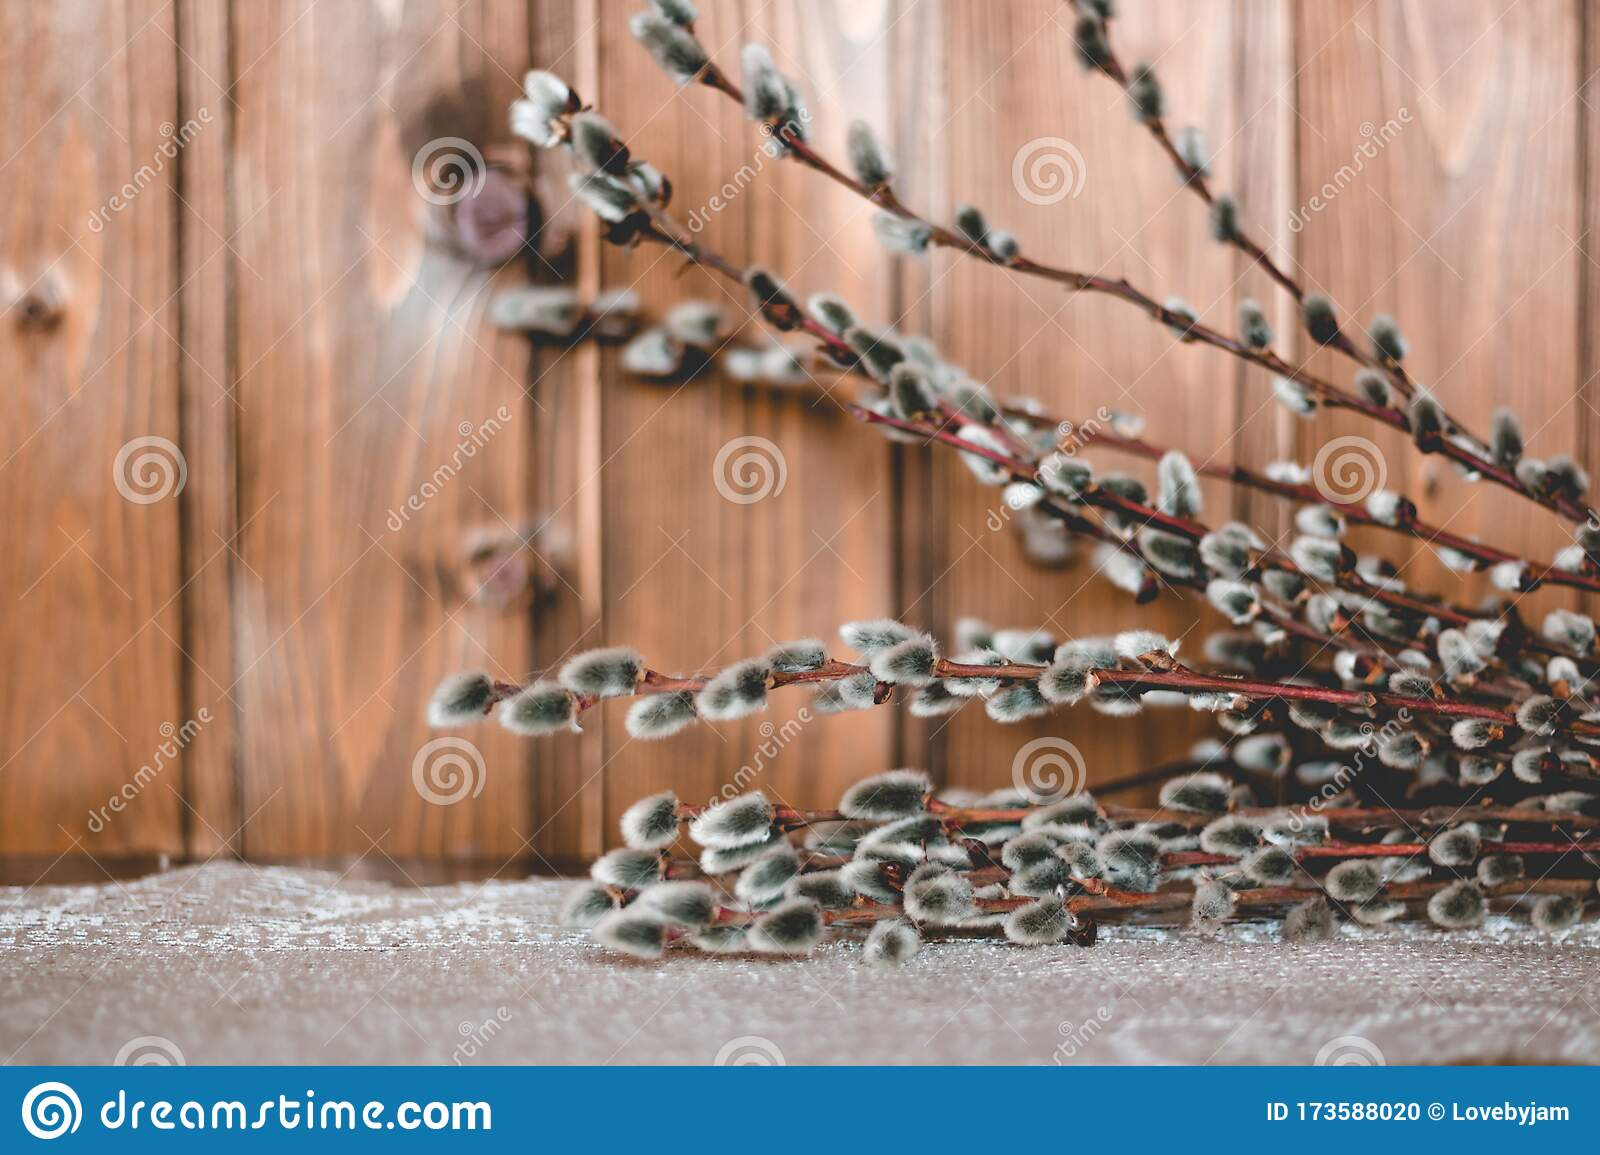 Cute Willow Branches On Wooden Table Flat Lay View Hello Spring Concept Tree Branch Close Up Stock Photo Image Of Decoration Nature 173588020